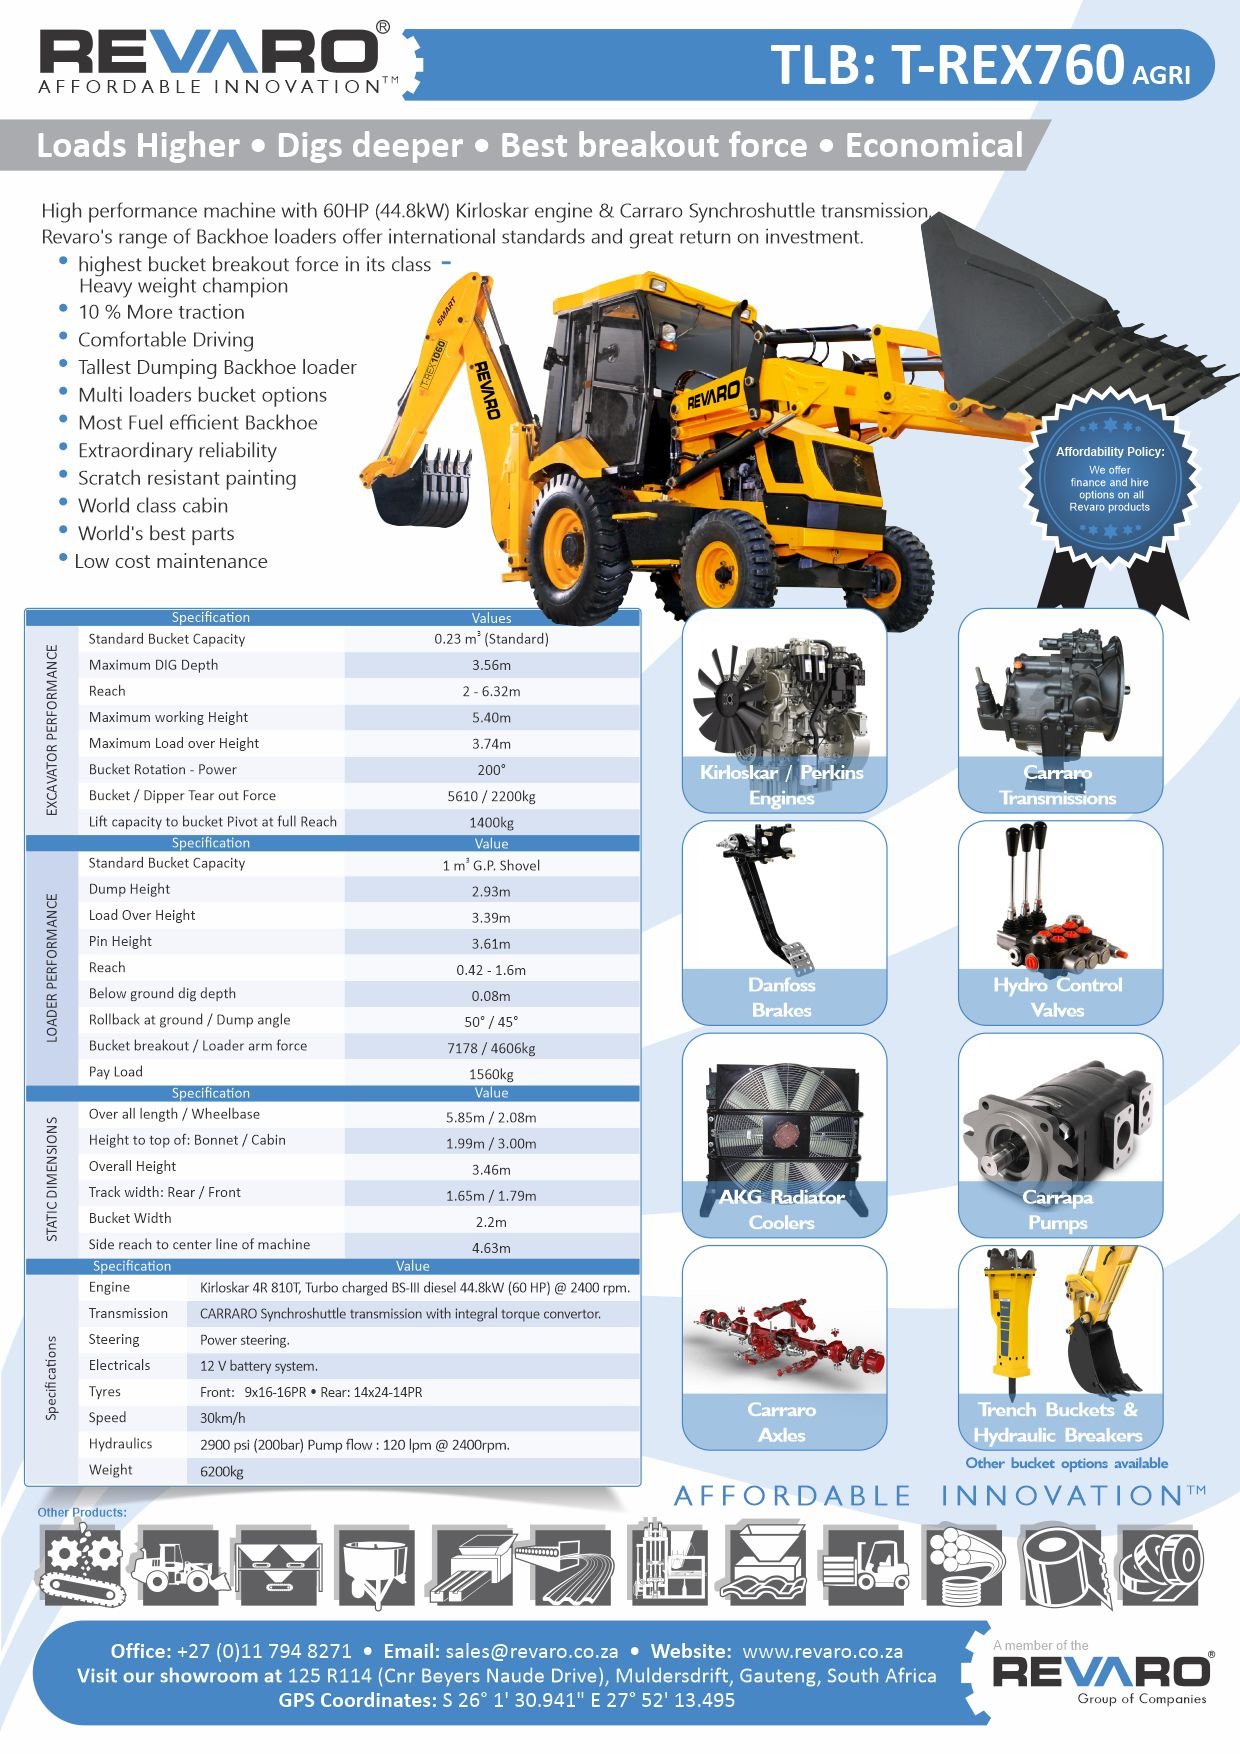 Revaro proudly introduces its Range of T-Rex TLB's Load higher, dig deeper, better breakout force